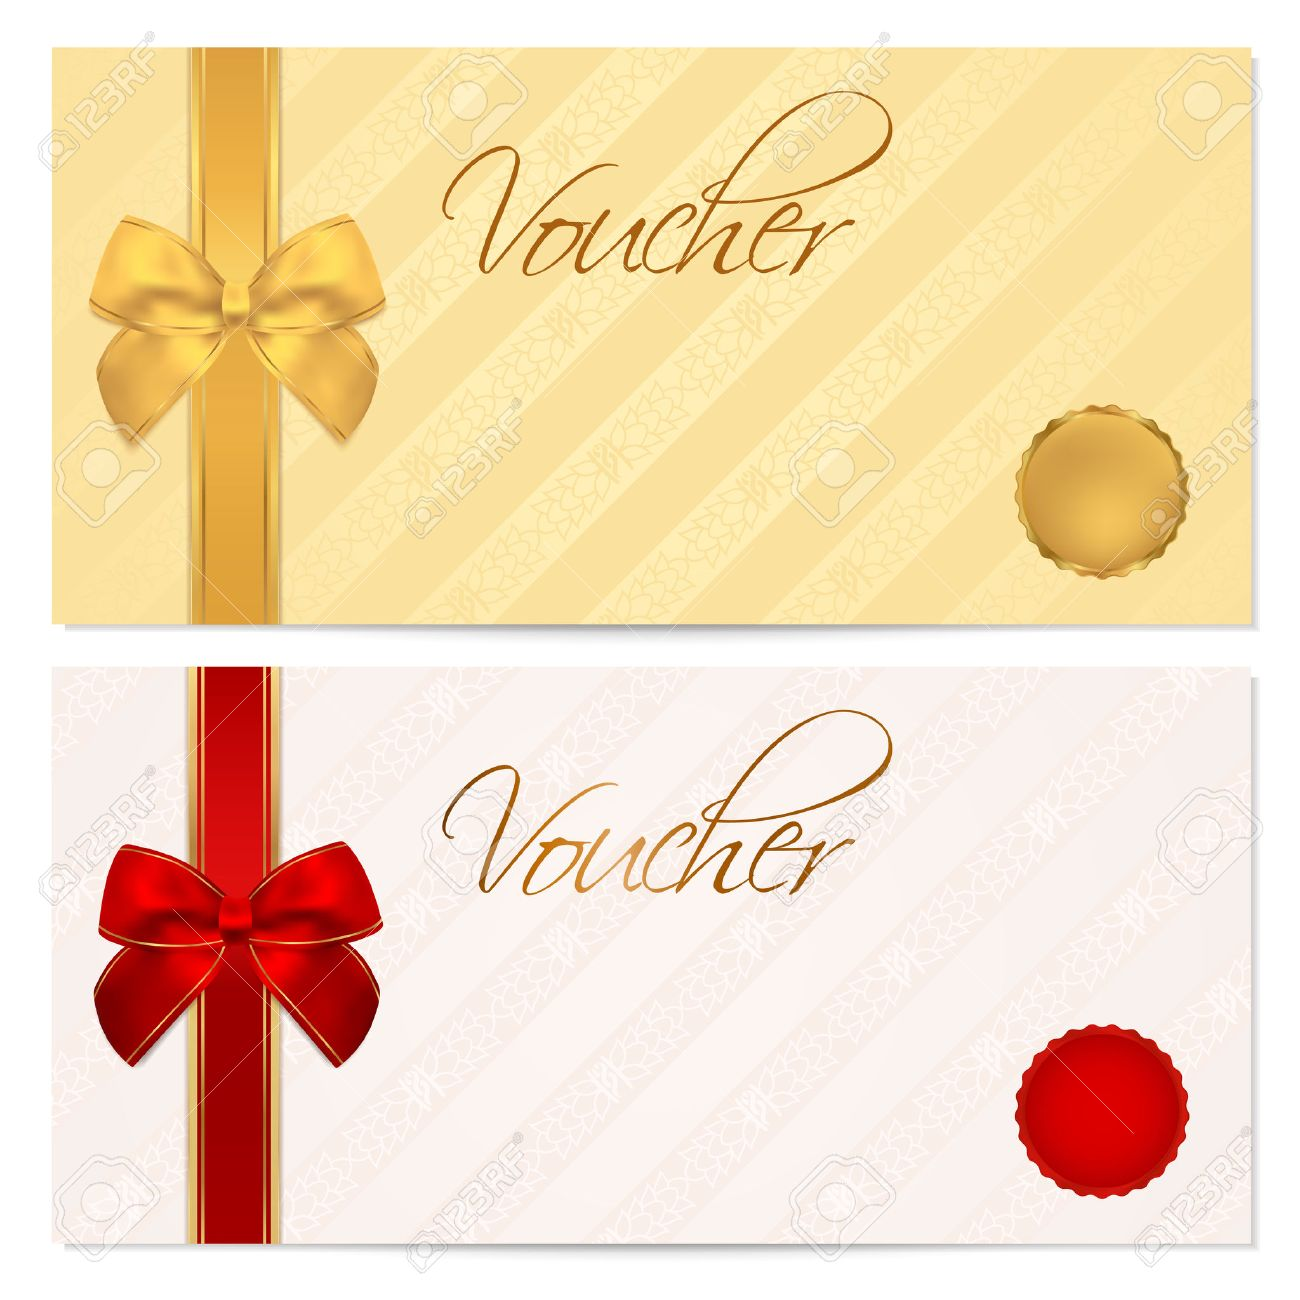 voucher gift certificate coupon template stripe pattern voucher gift certificate coupon template stripe pattern red and gold bow background